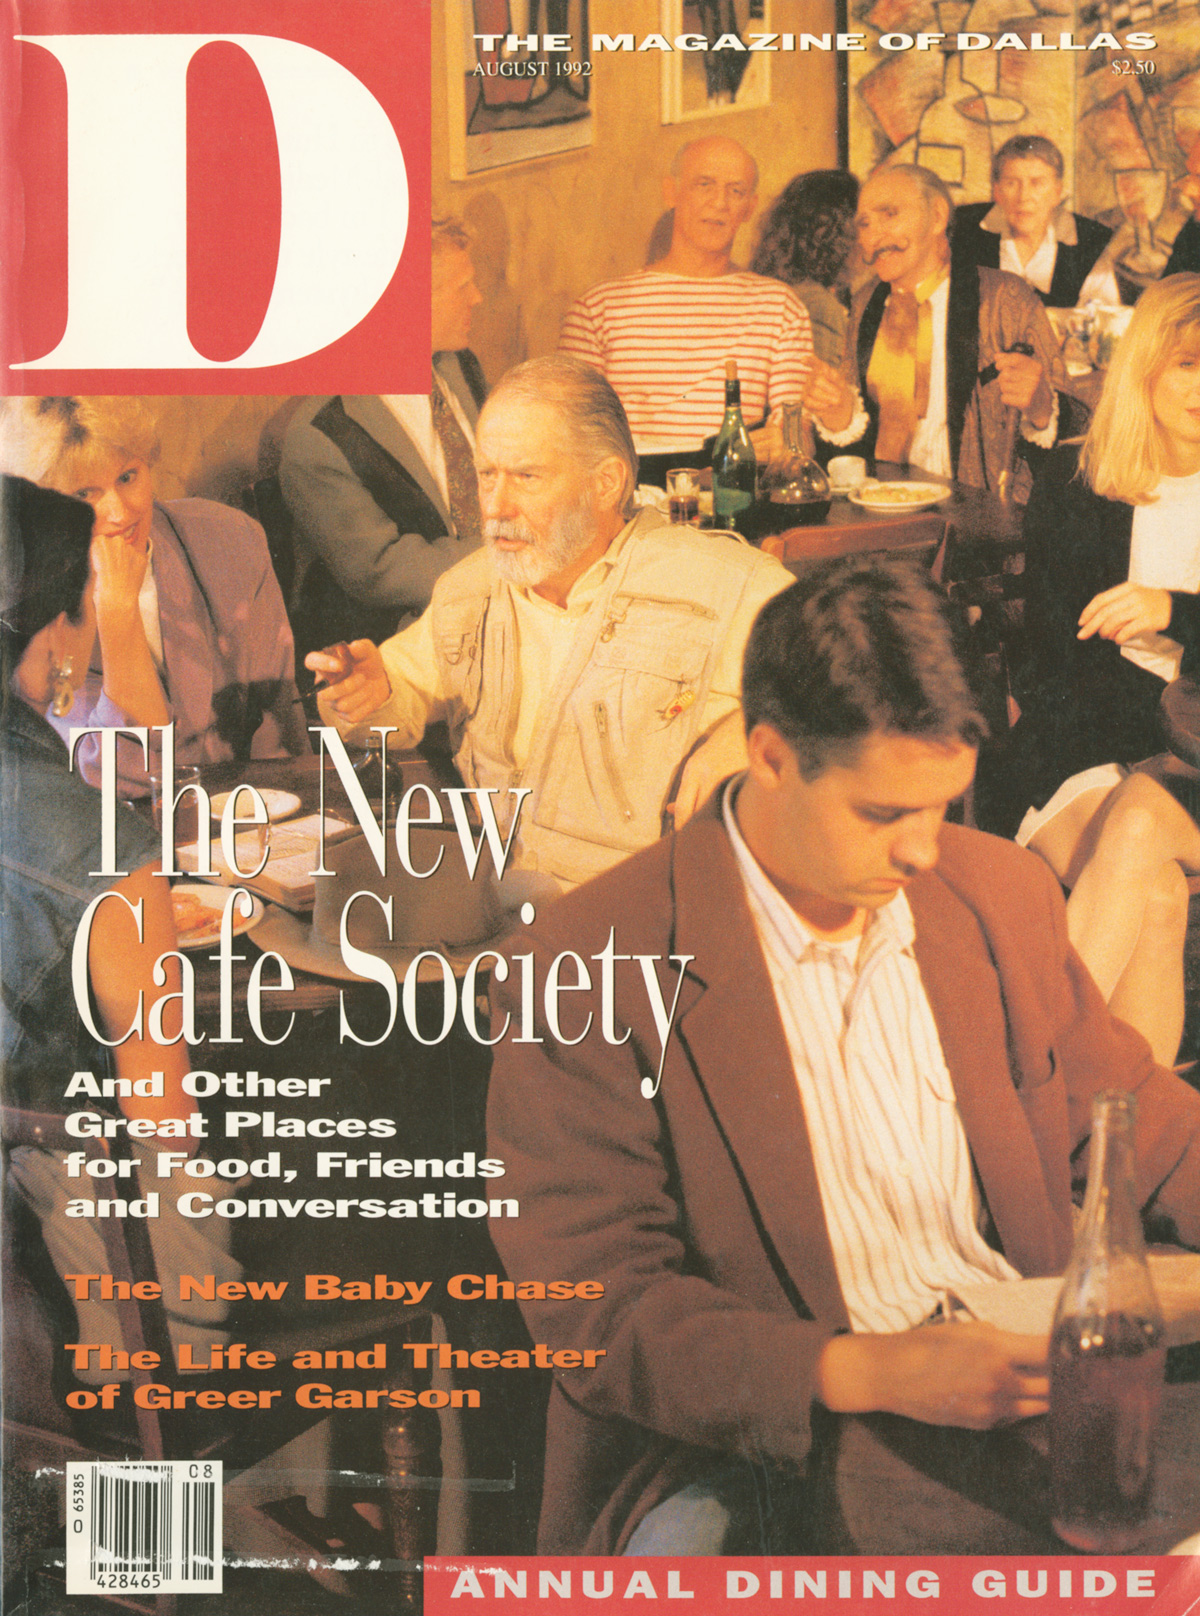 August 1992 cover